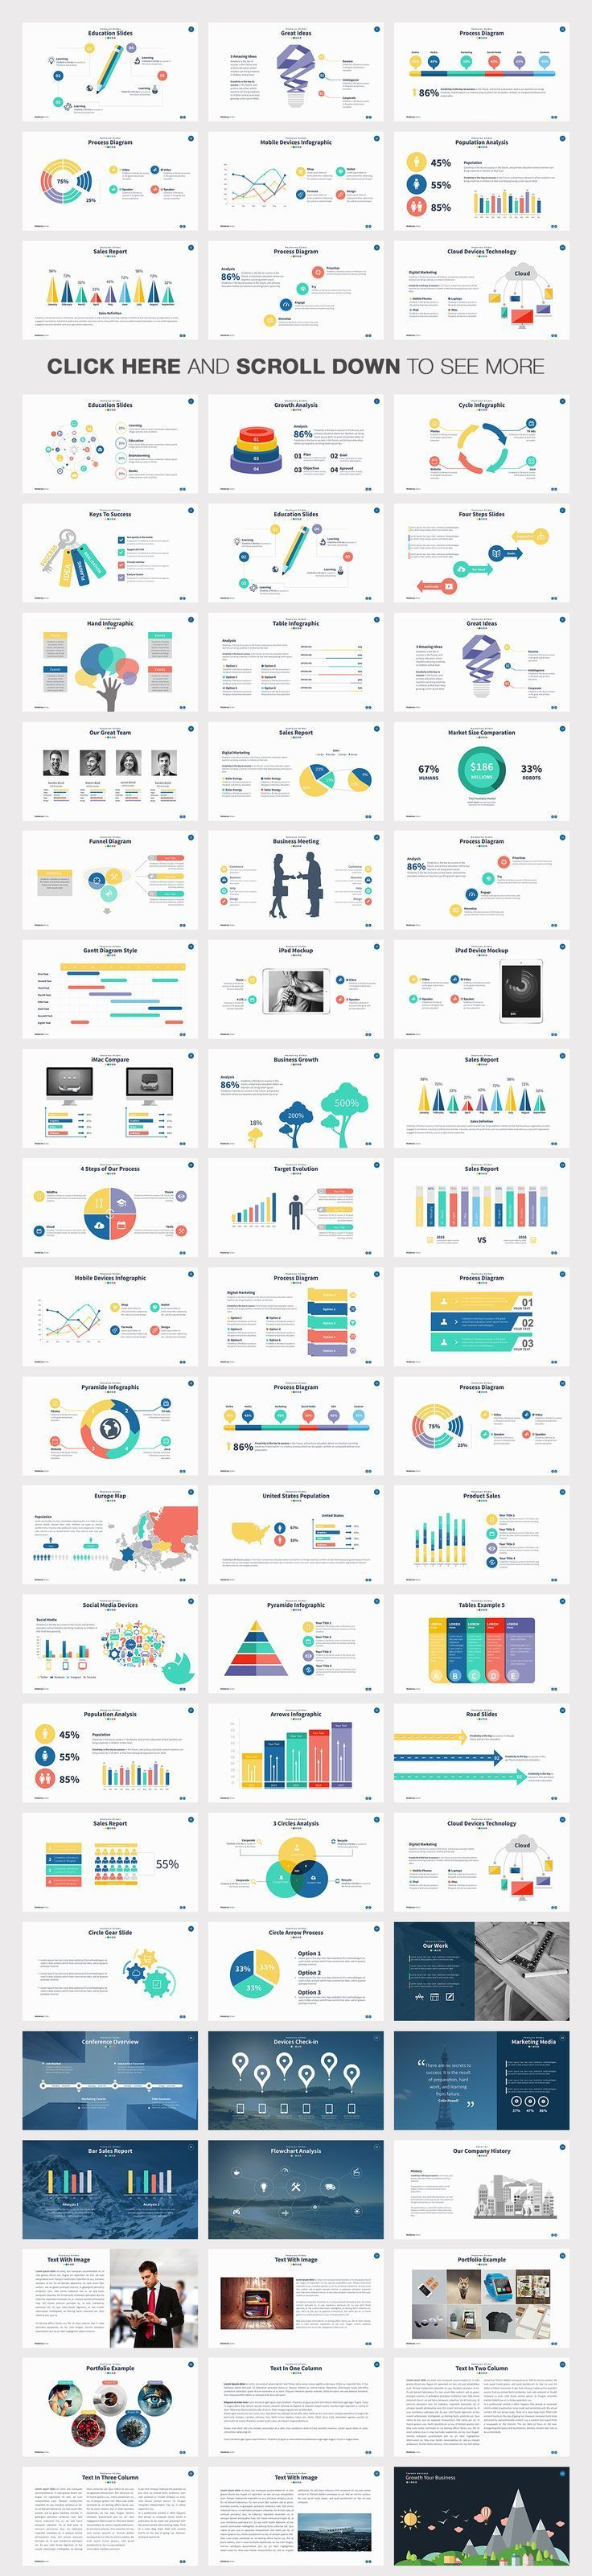 15 best job images on pinterest presentation design swot business infographic data visualisation moderna powerpoint template infographic description moderna powerpoint template by slidedizer on creative market toneelgroepblik Choice Image